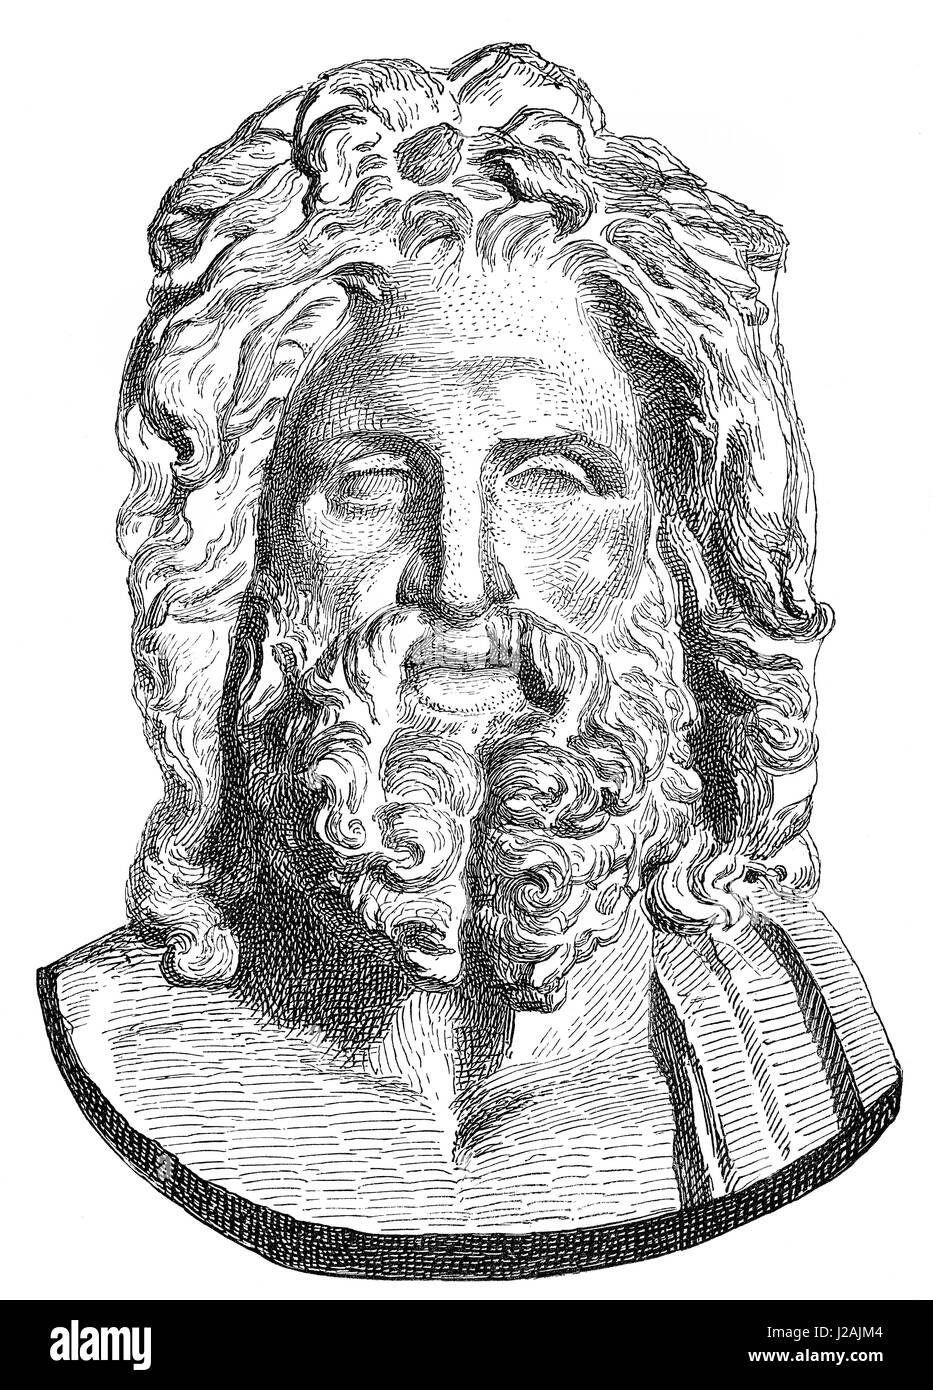 Statue of Zeus of king of the gods - Stock Image